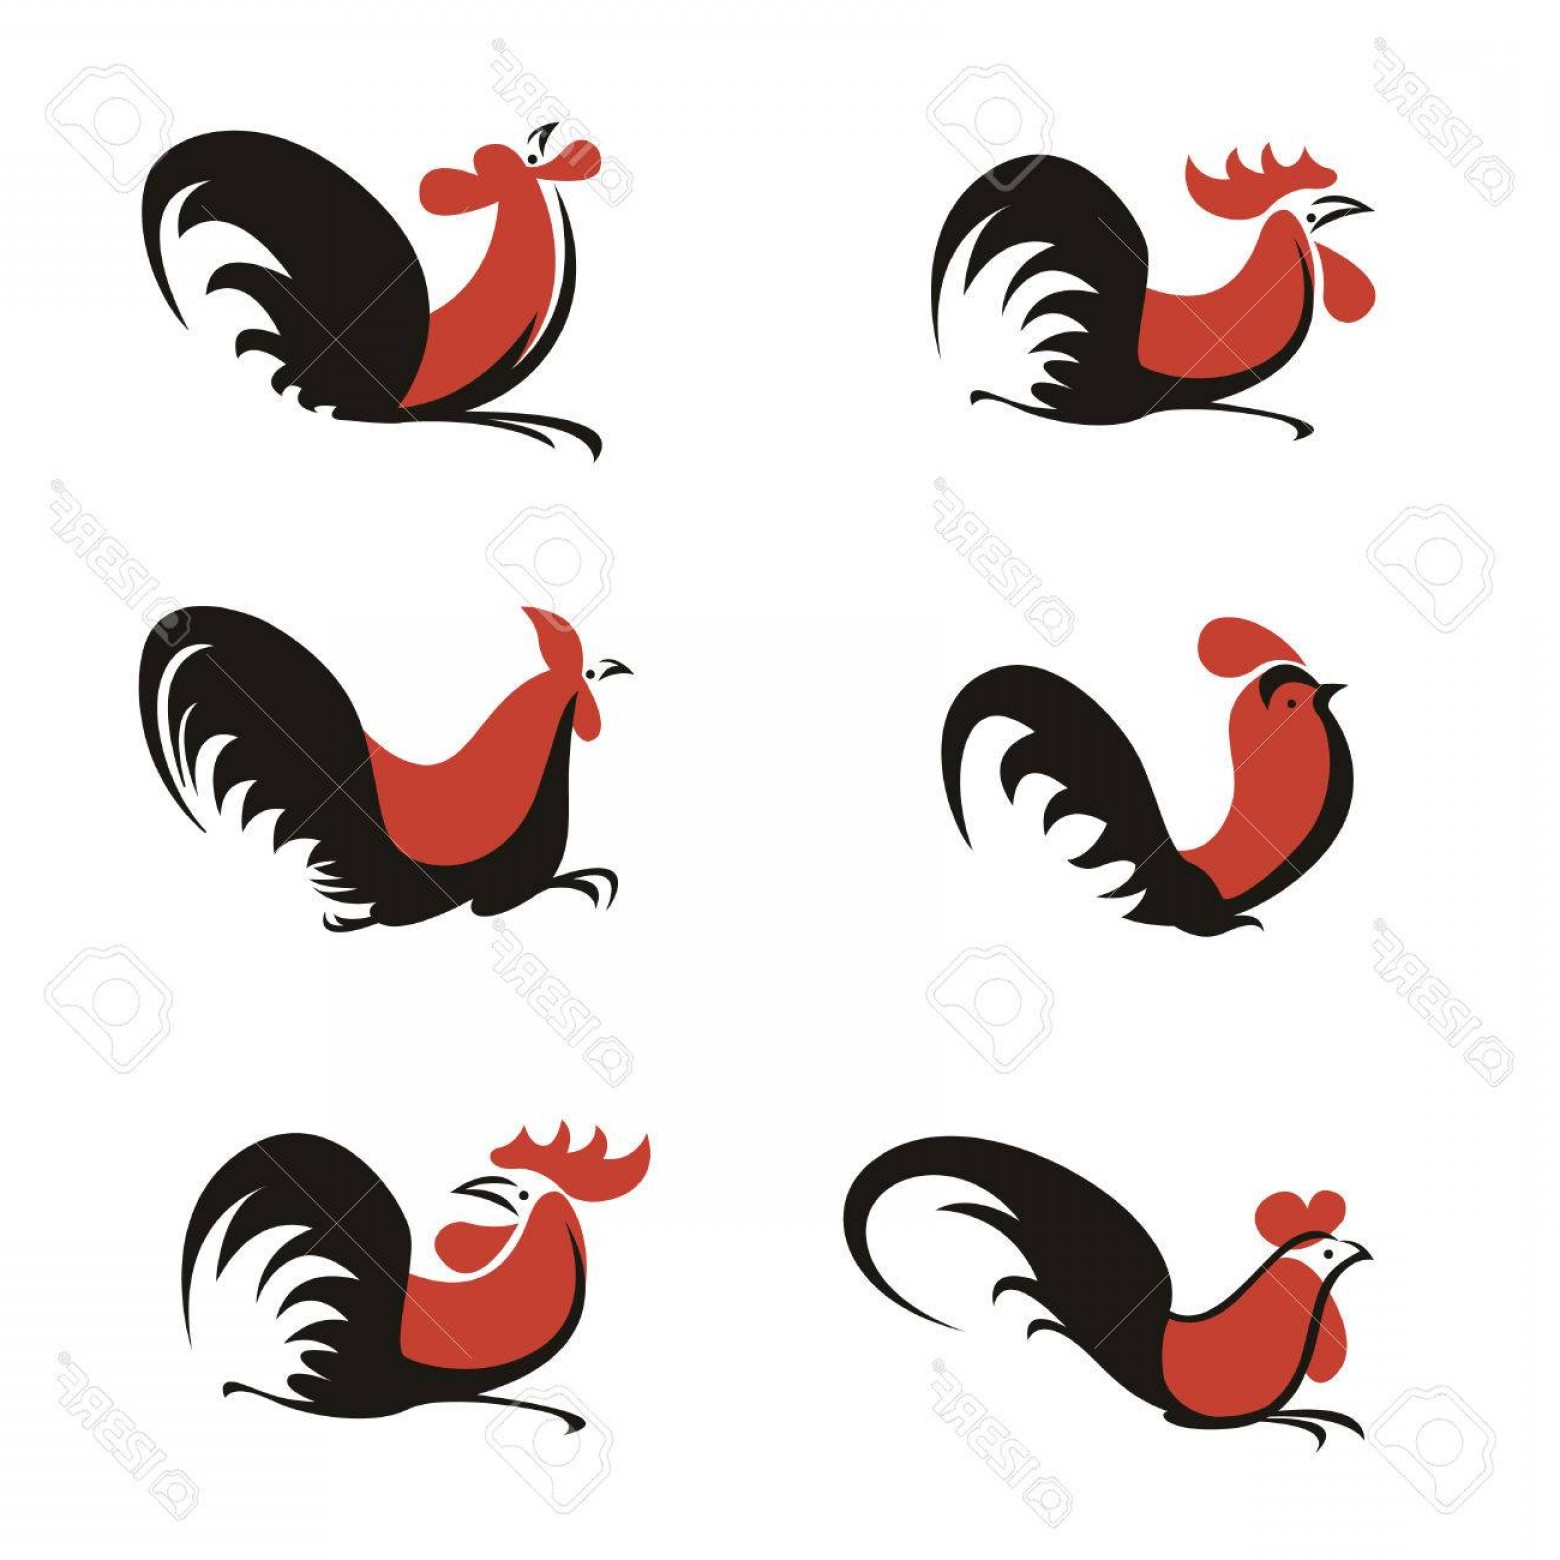 Chicken Vector Black: Photostock Vector Orange And Black Chicken Rooster Logo Sign Vector Art Set Design